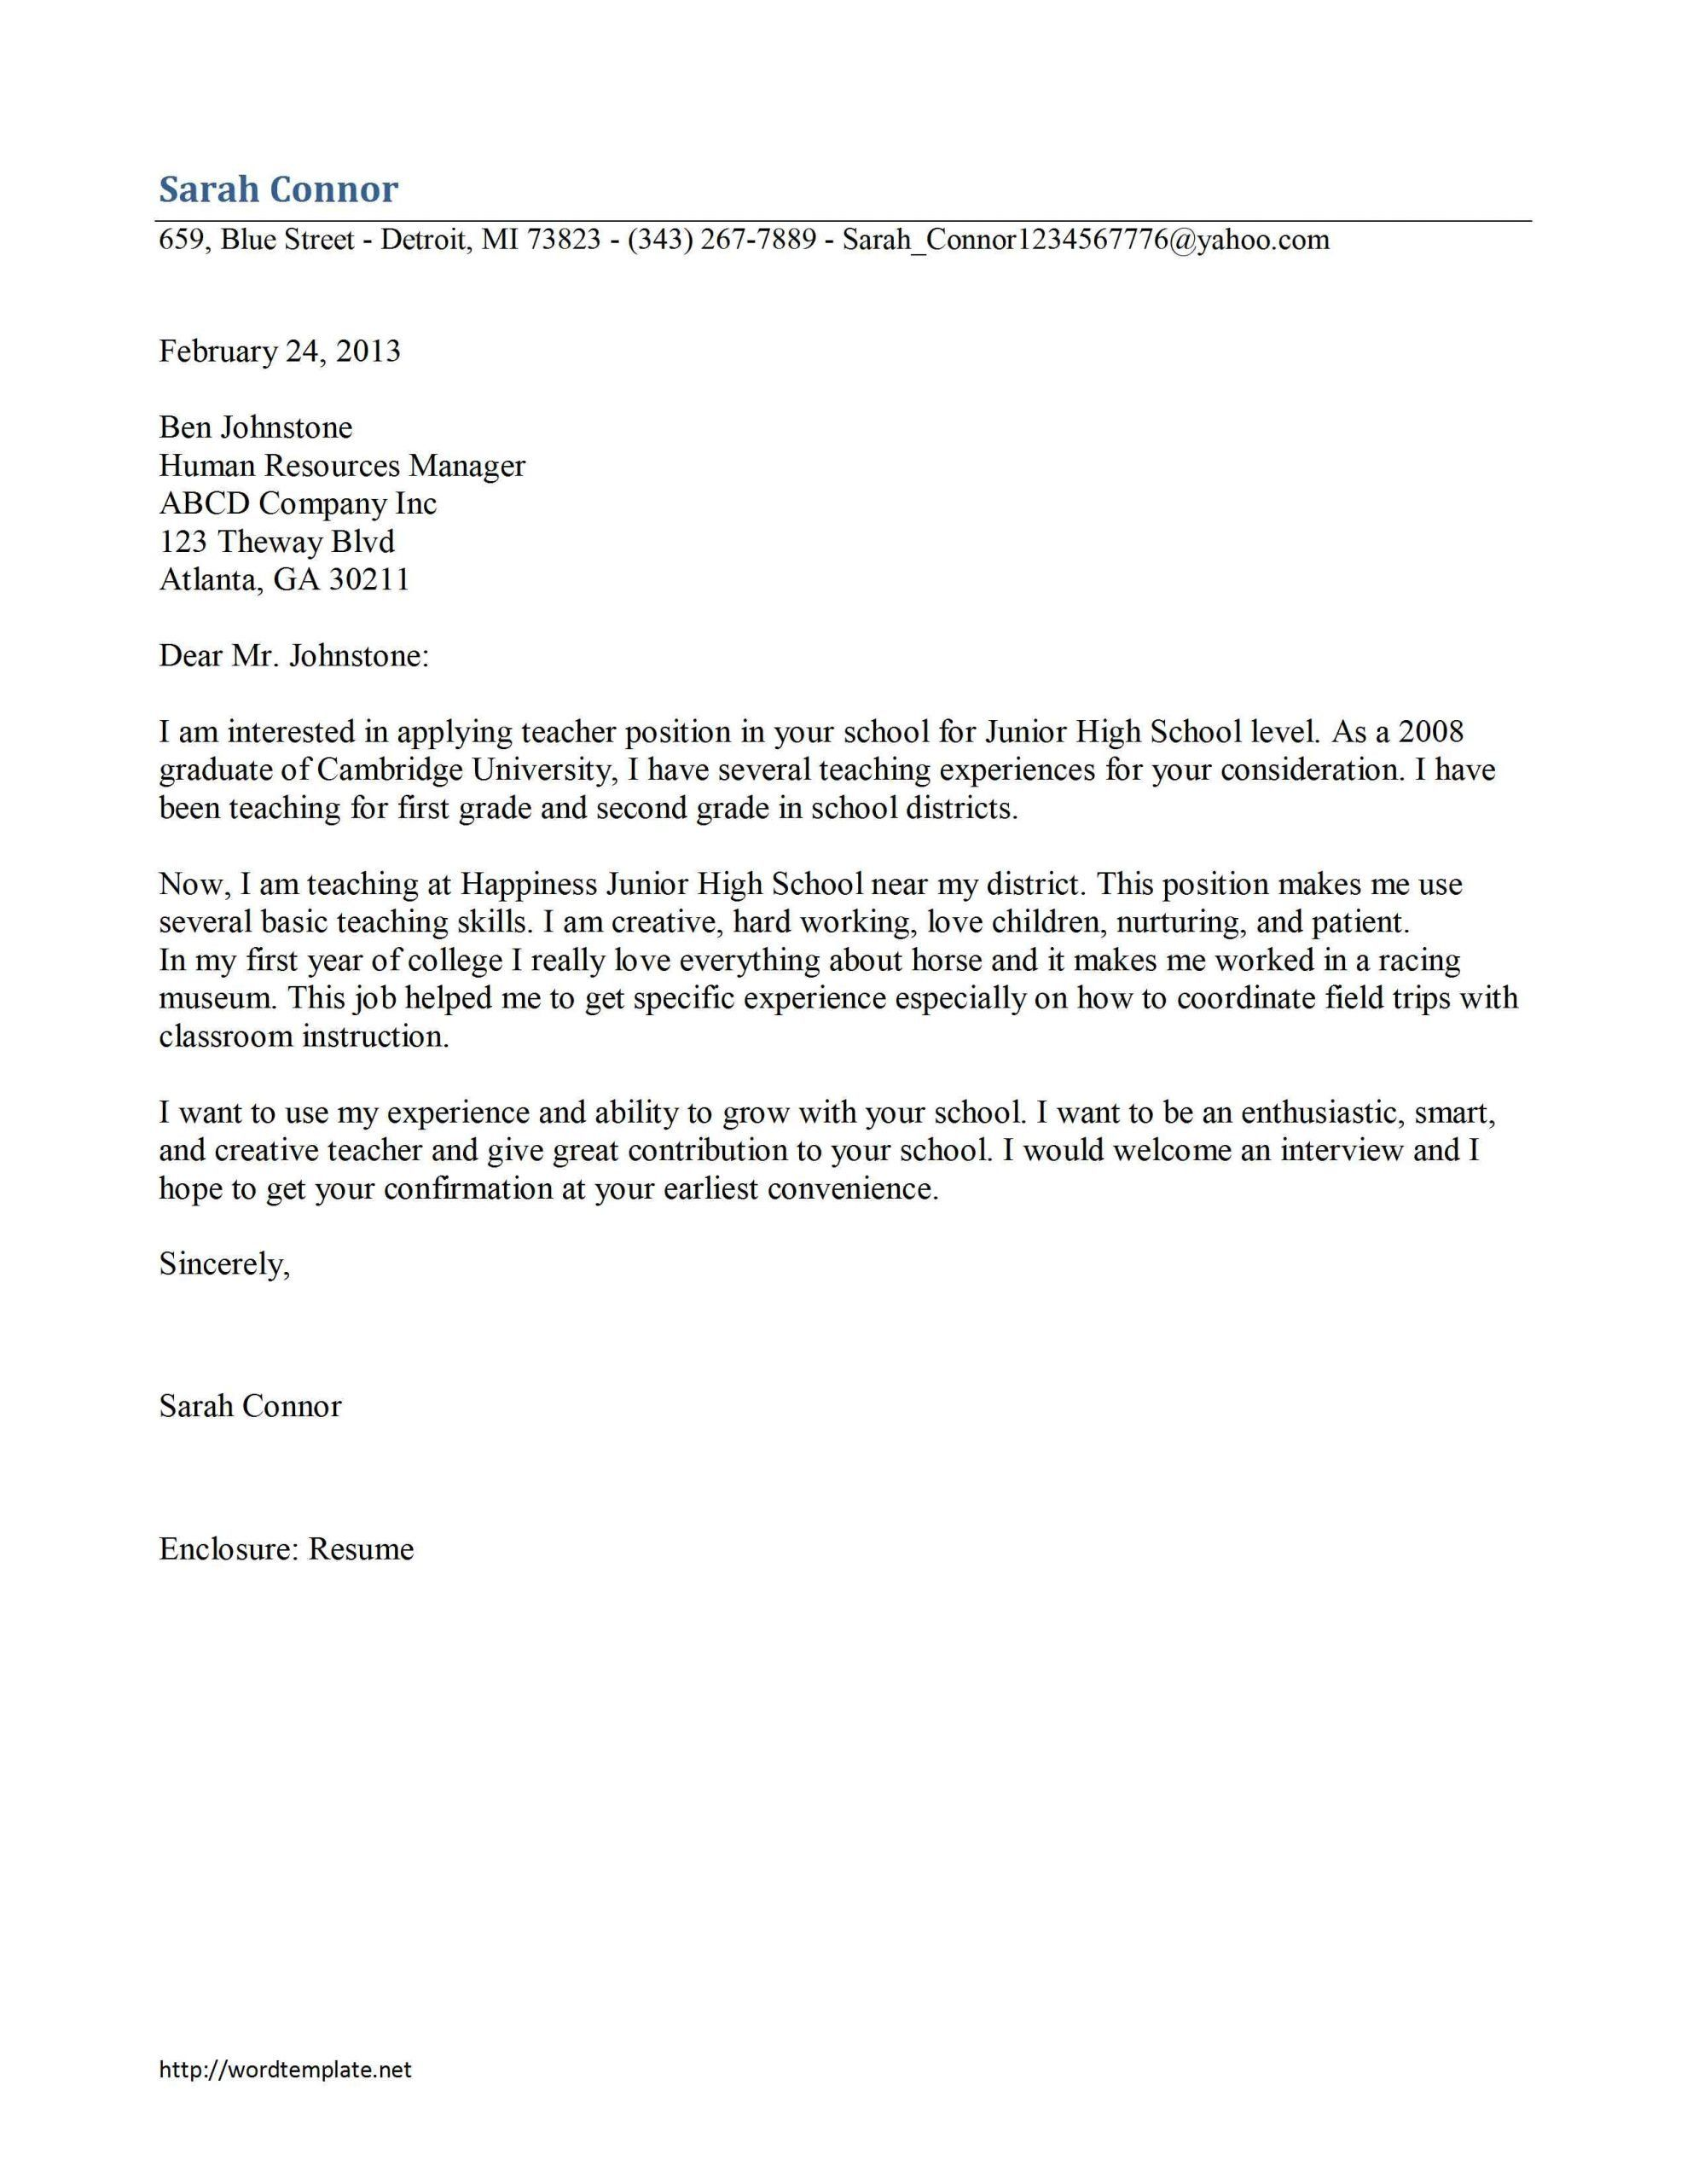 cover letter for teaching teacher cover letter template in 2020